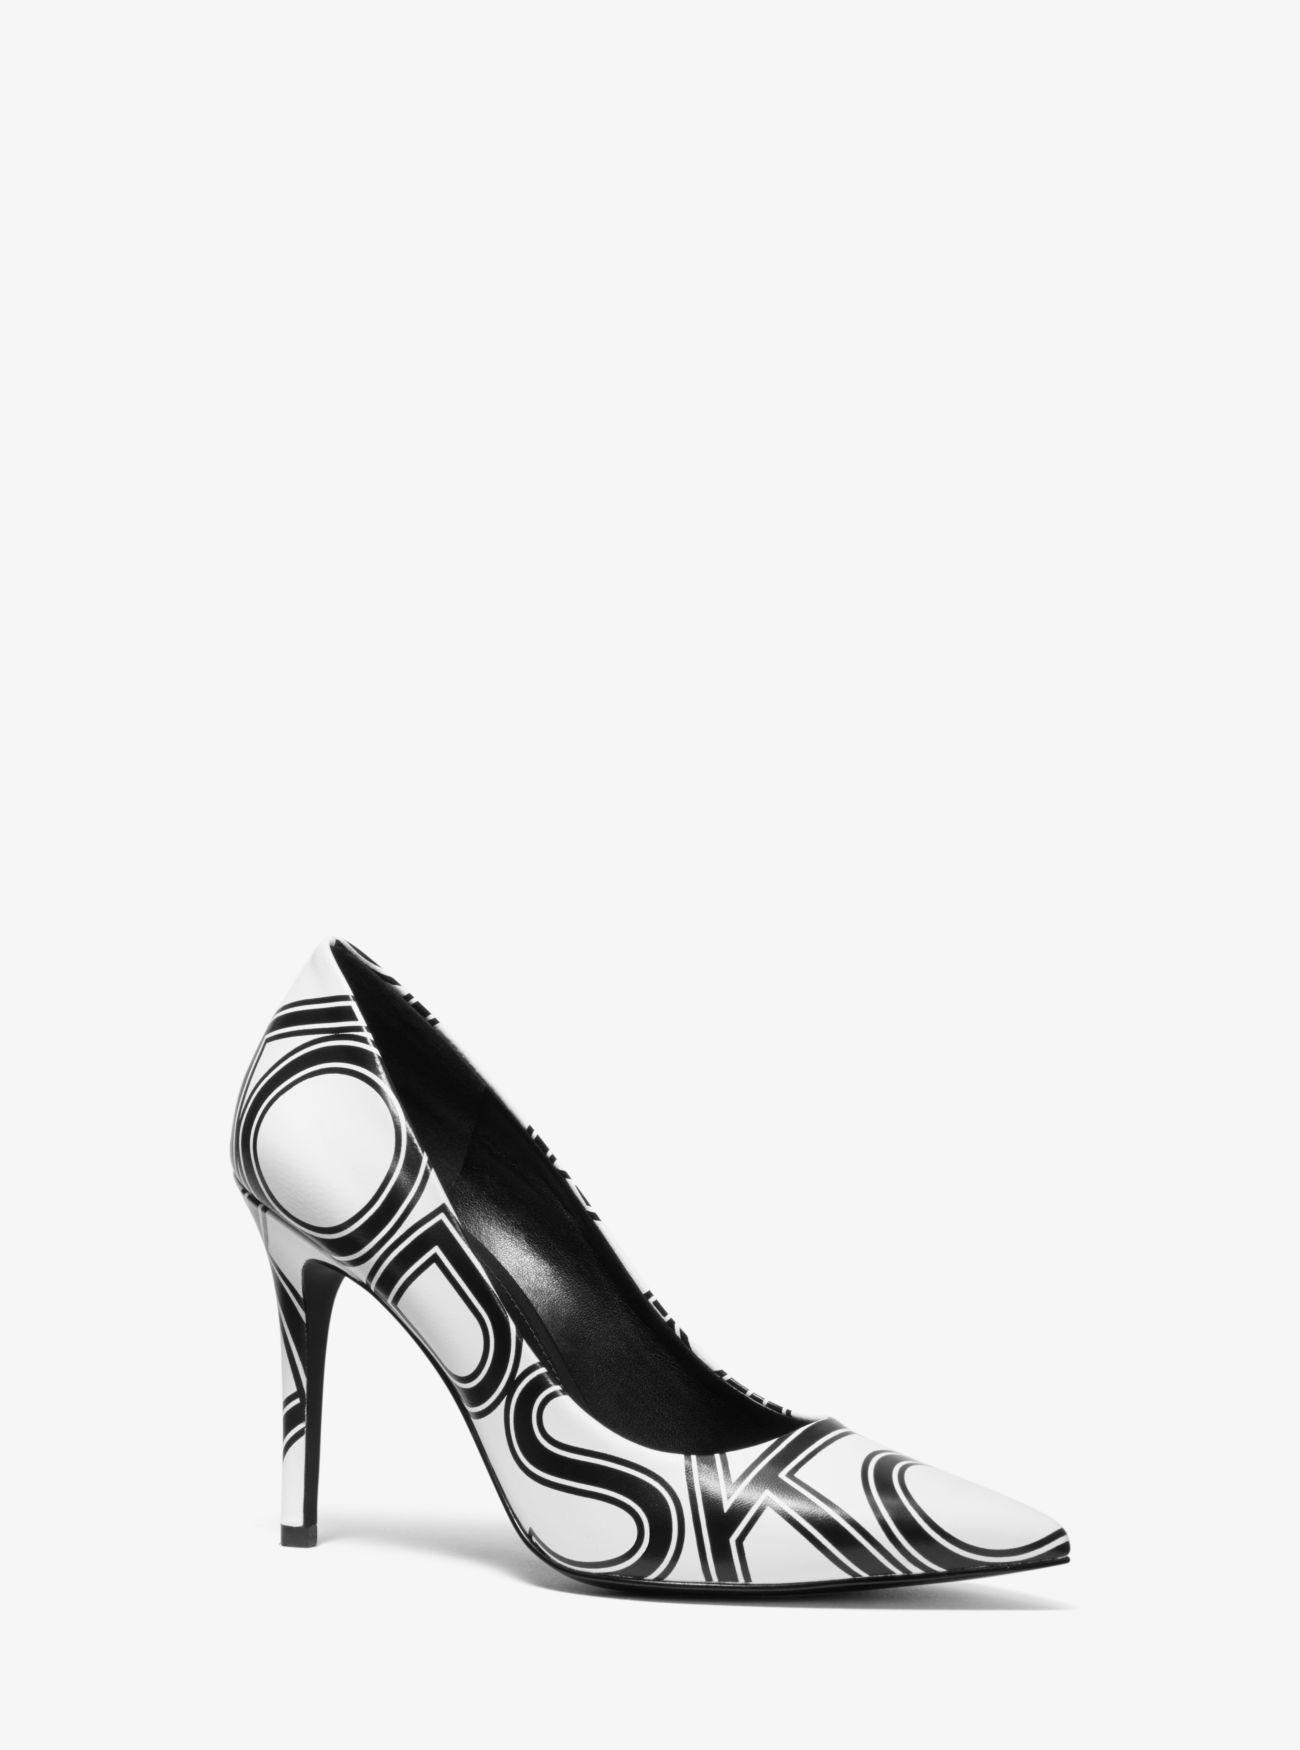 84d8a7f1ed6 Lyst - Michael Kors Claire Graphic Logo Leather Pump in Black